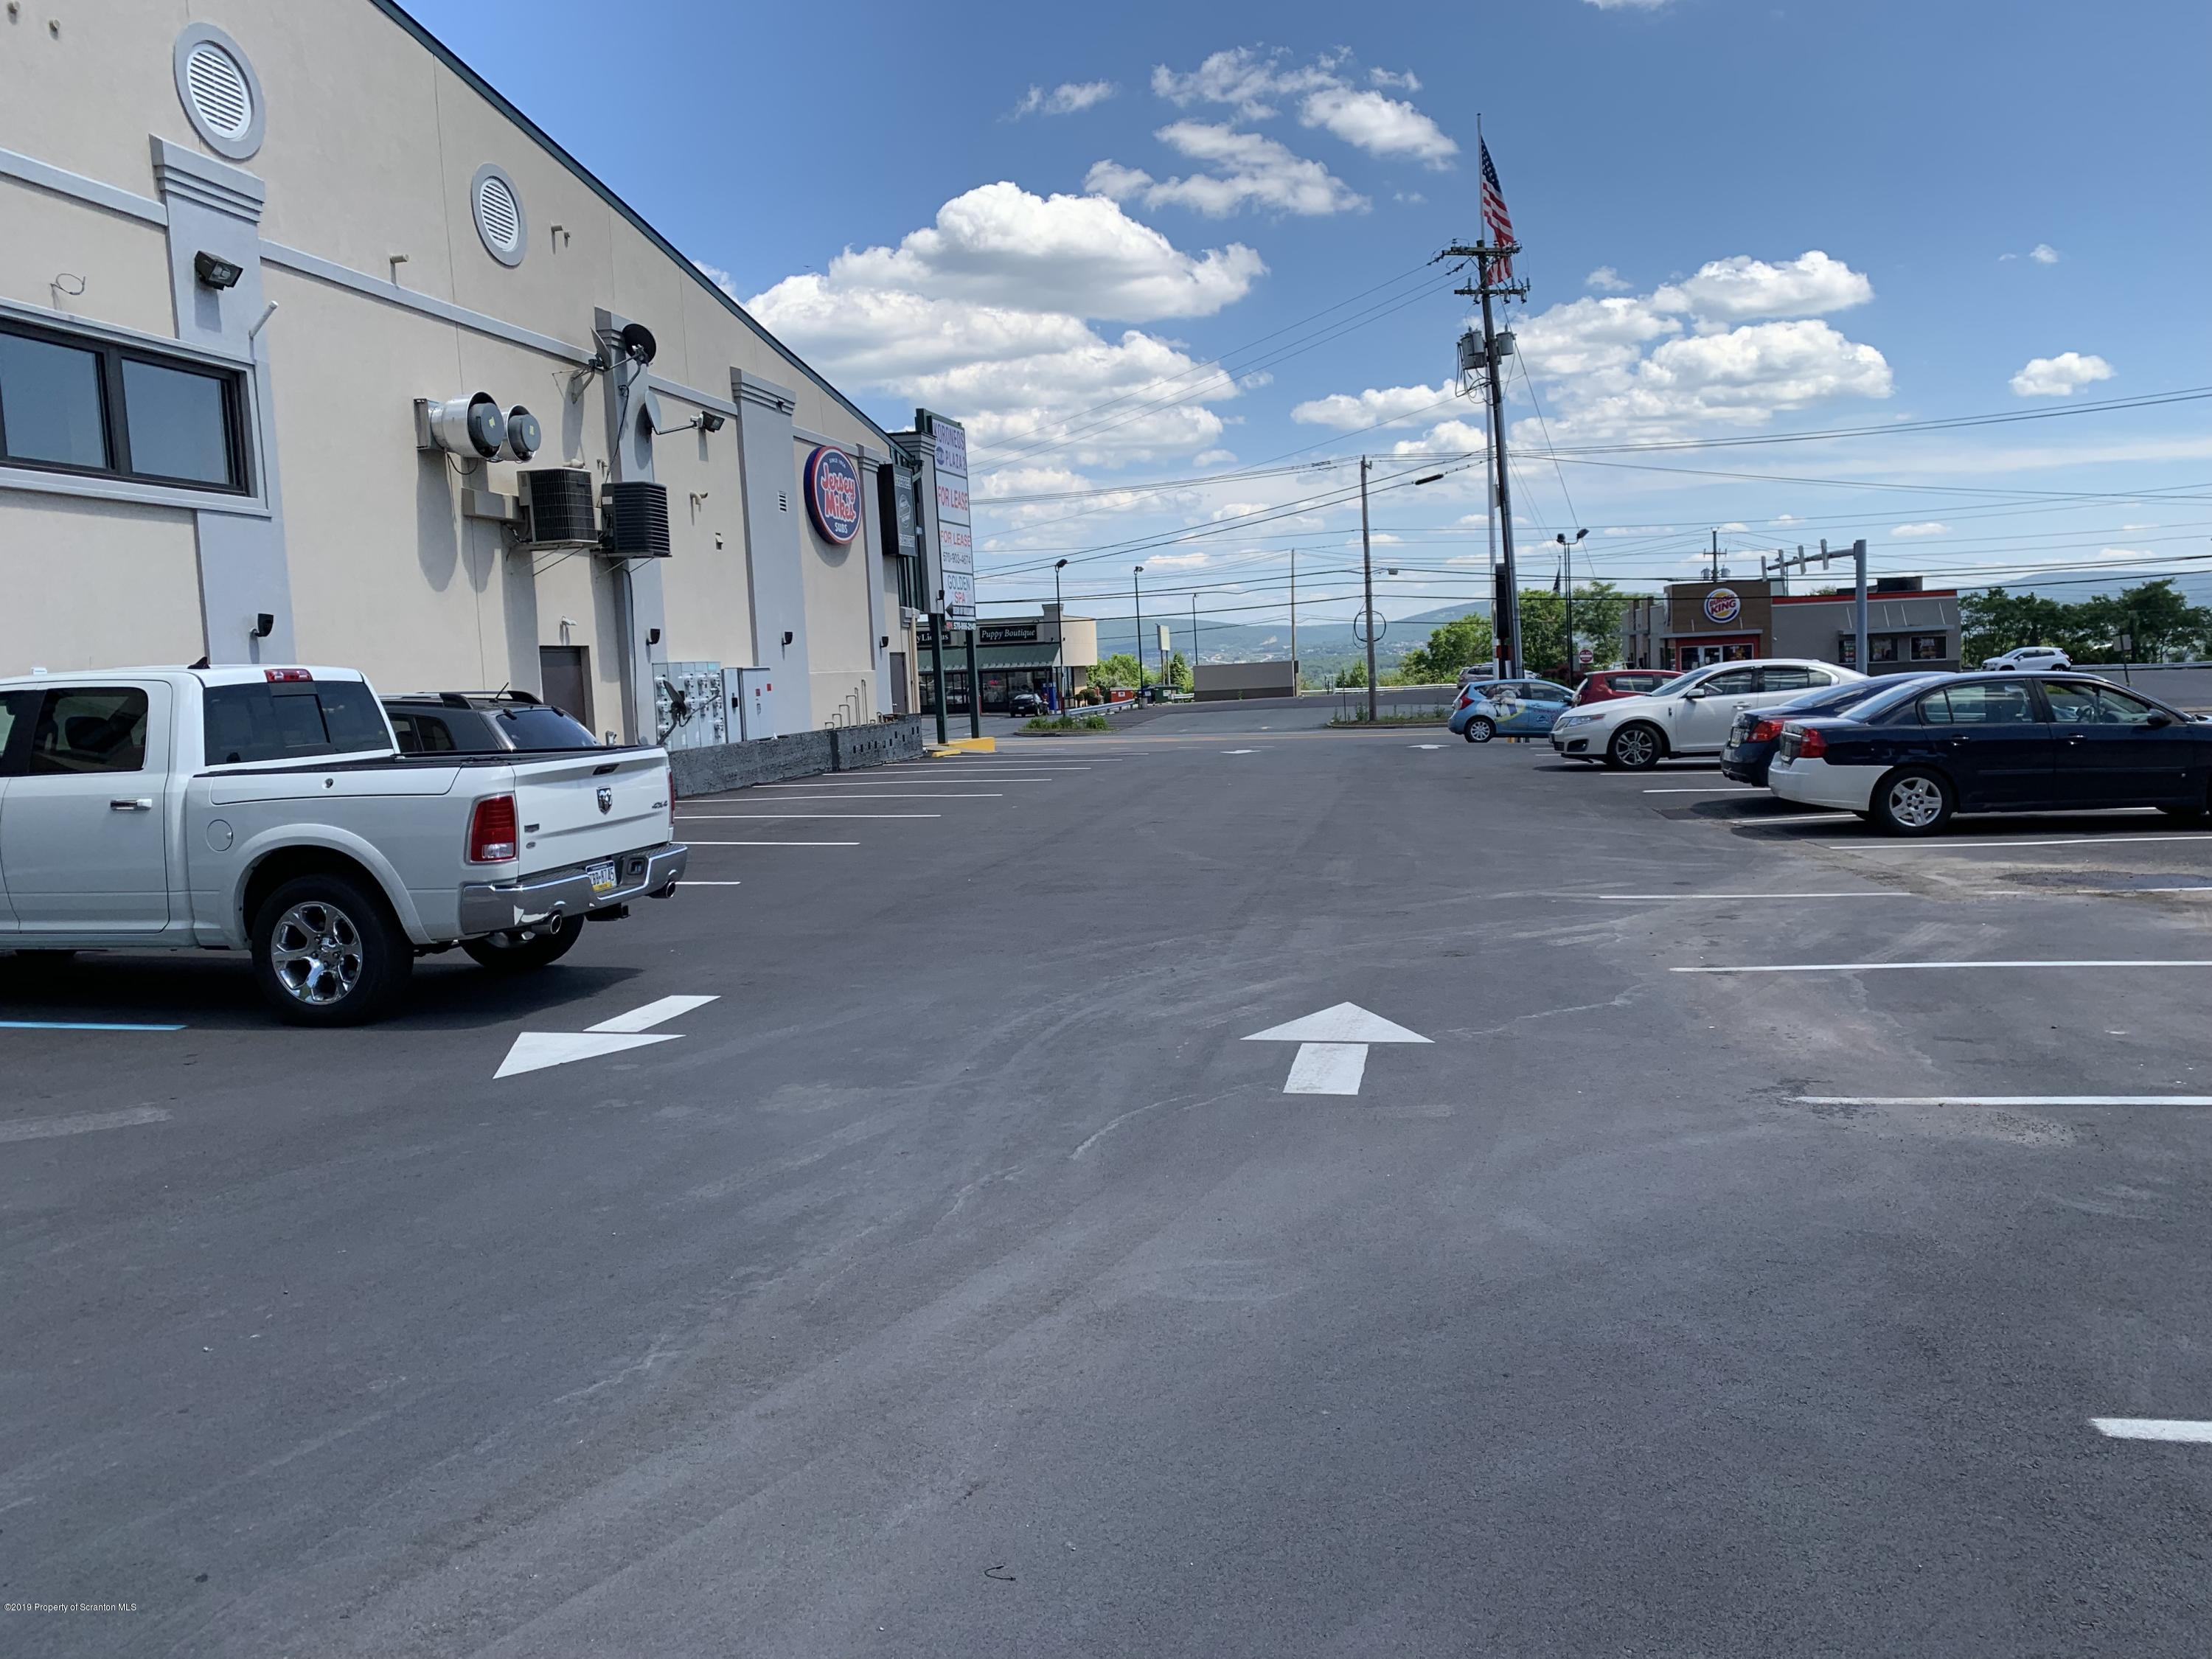 539 Scr Cdale Hwy, Dickson City, Pennsylvania 18519, ,2 BathroomsBathrooms,Commercial,For Lease,Scr Cdale,19-3738